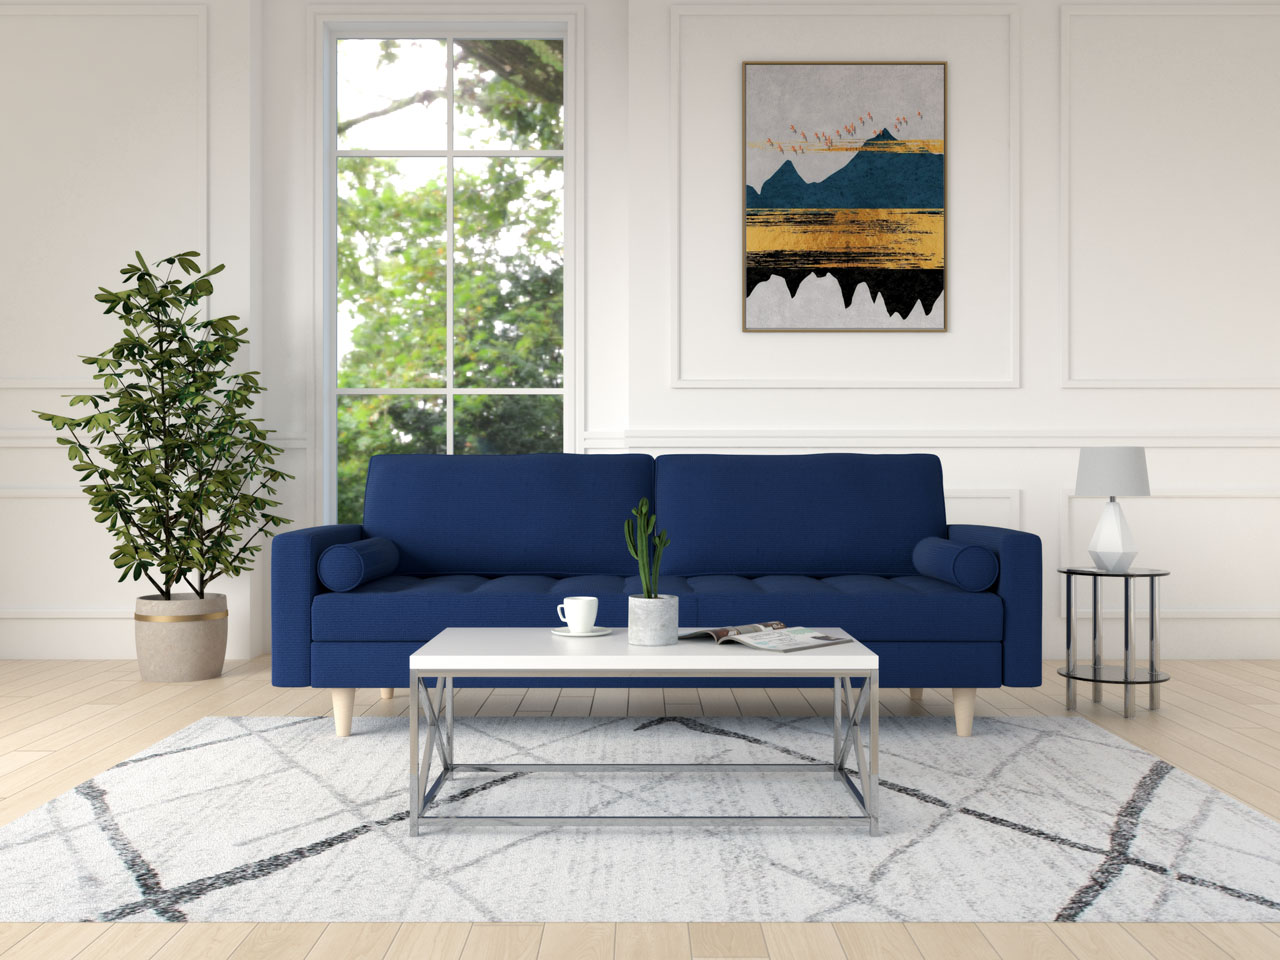 White and chrome coffee table with a blue couch